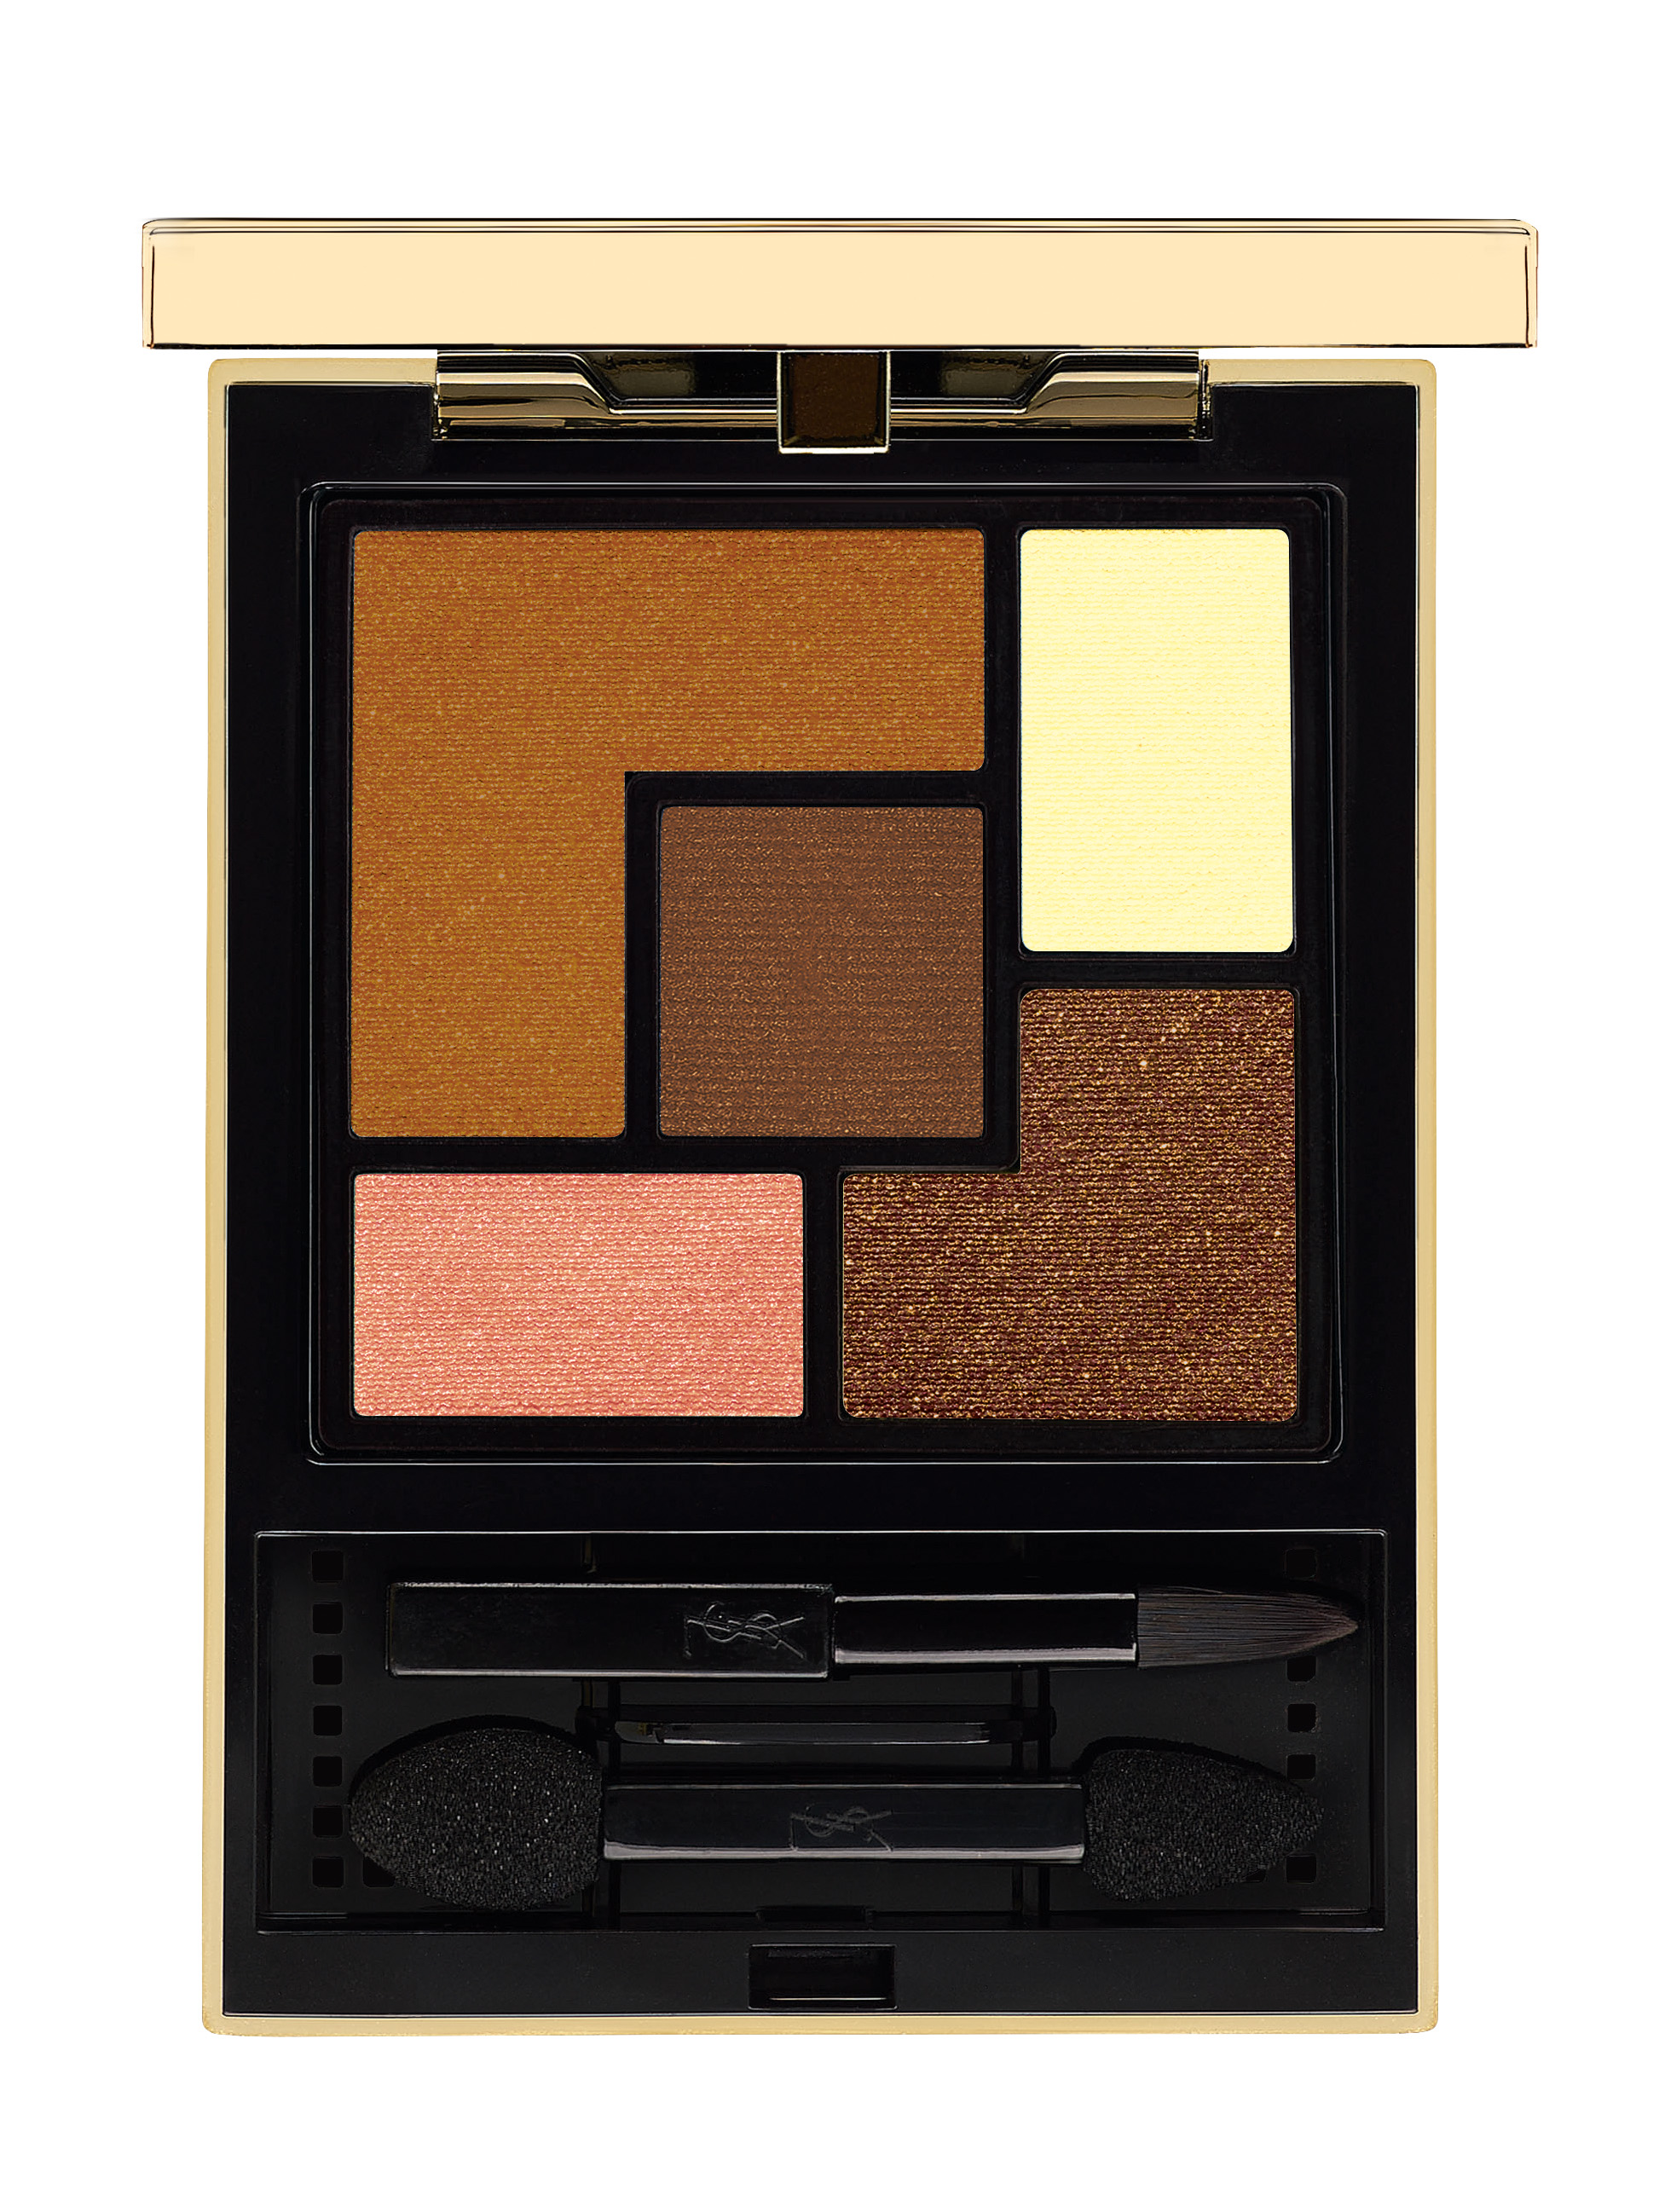 Ysl_Couture_Palette_MAURESQUES